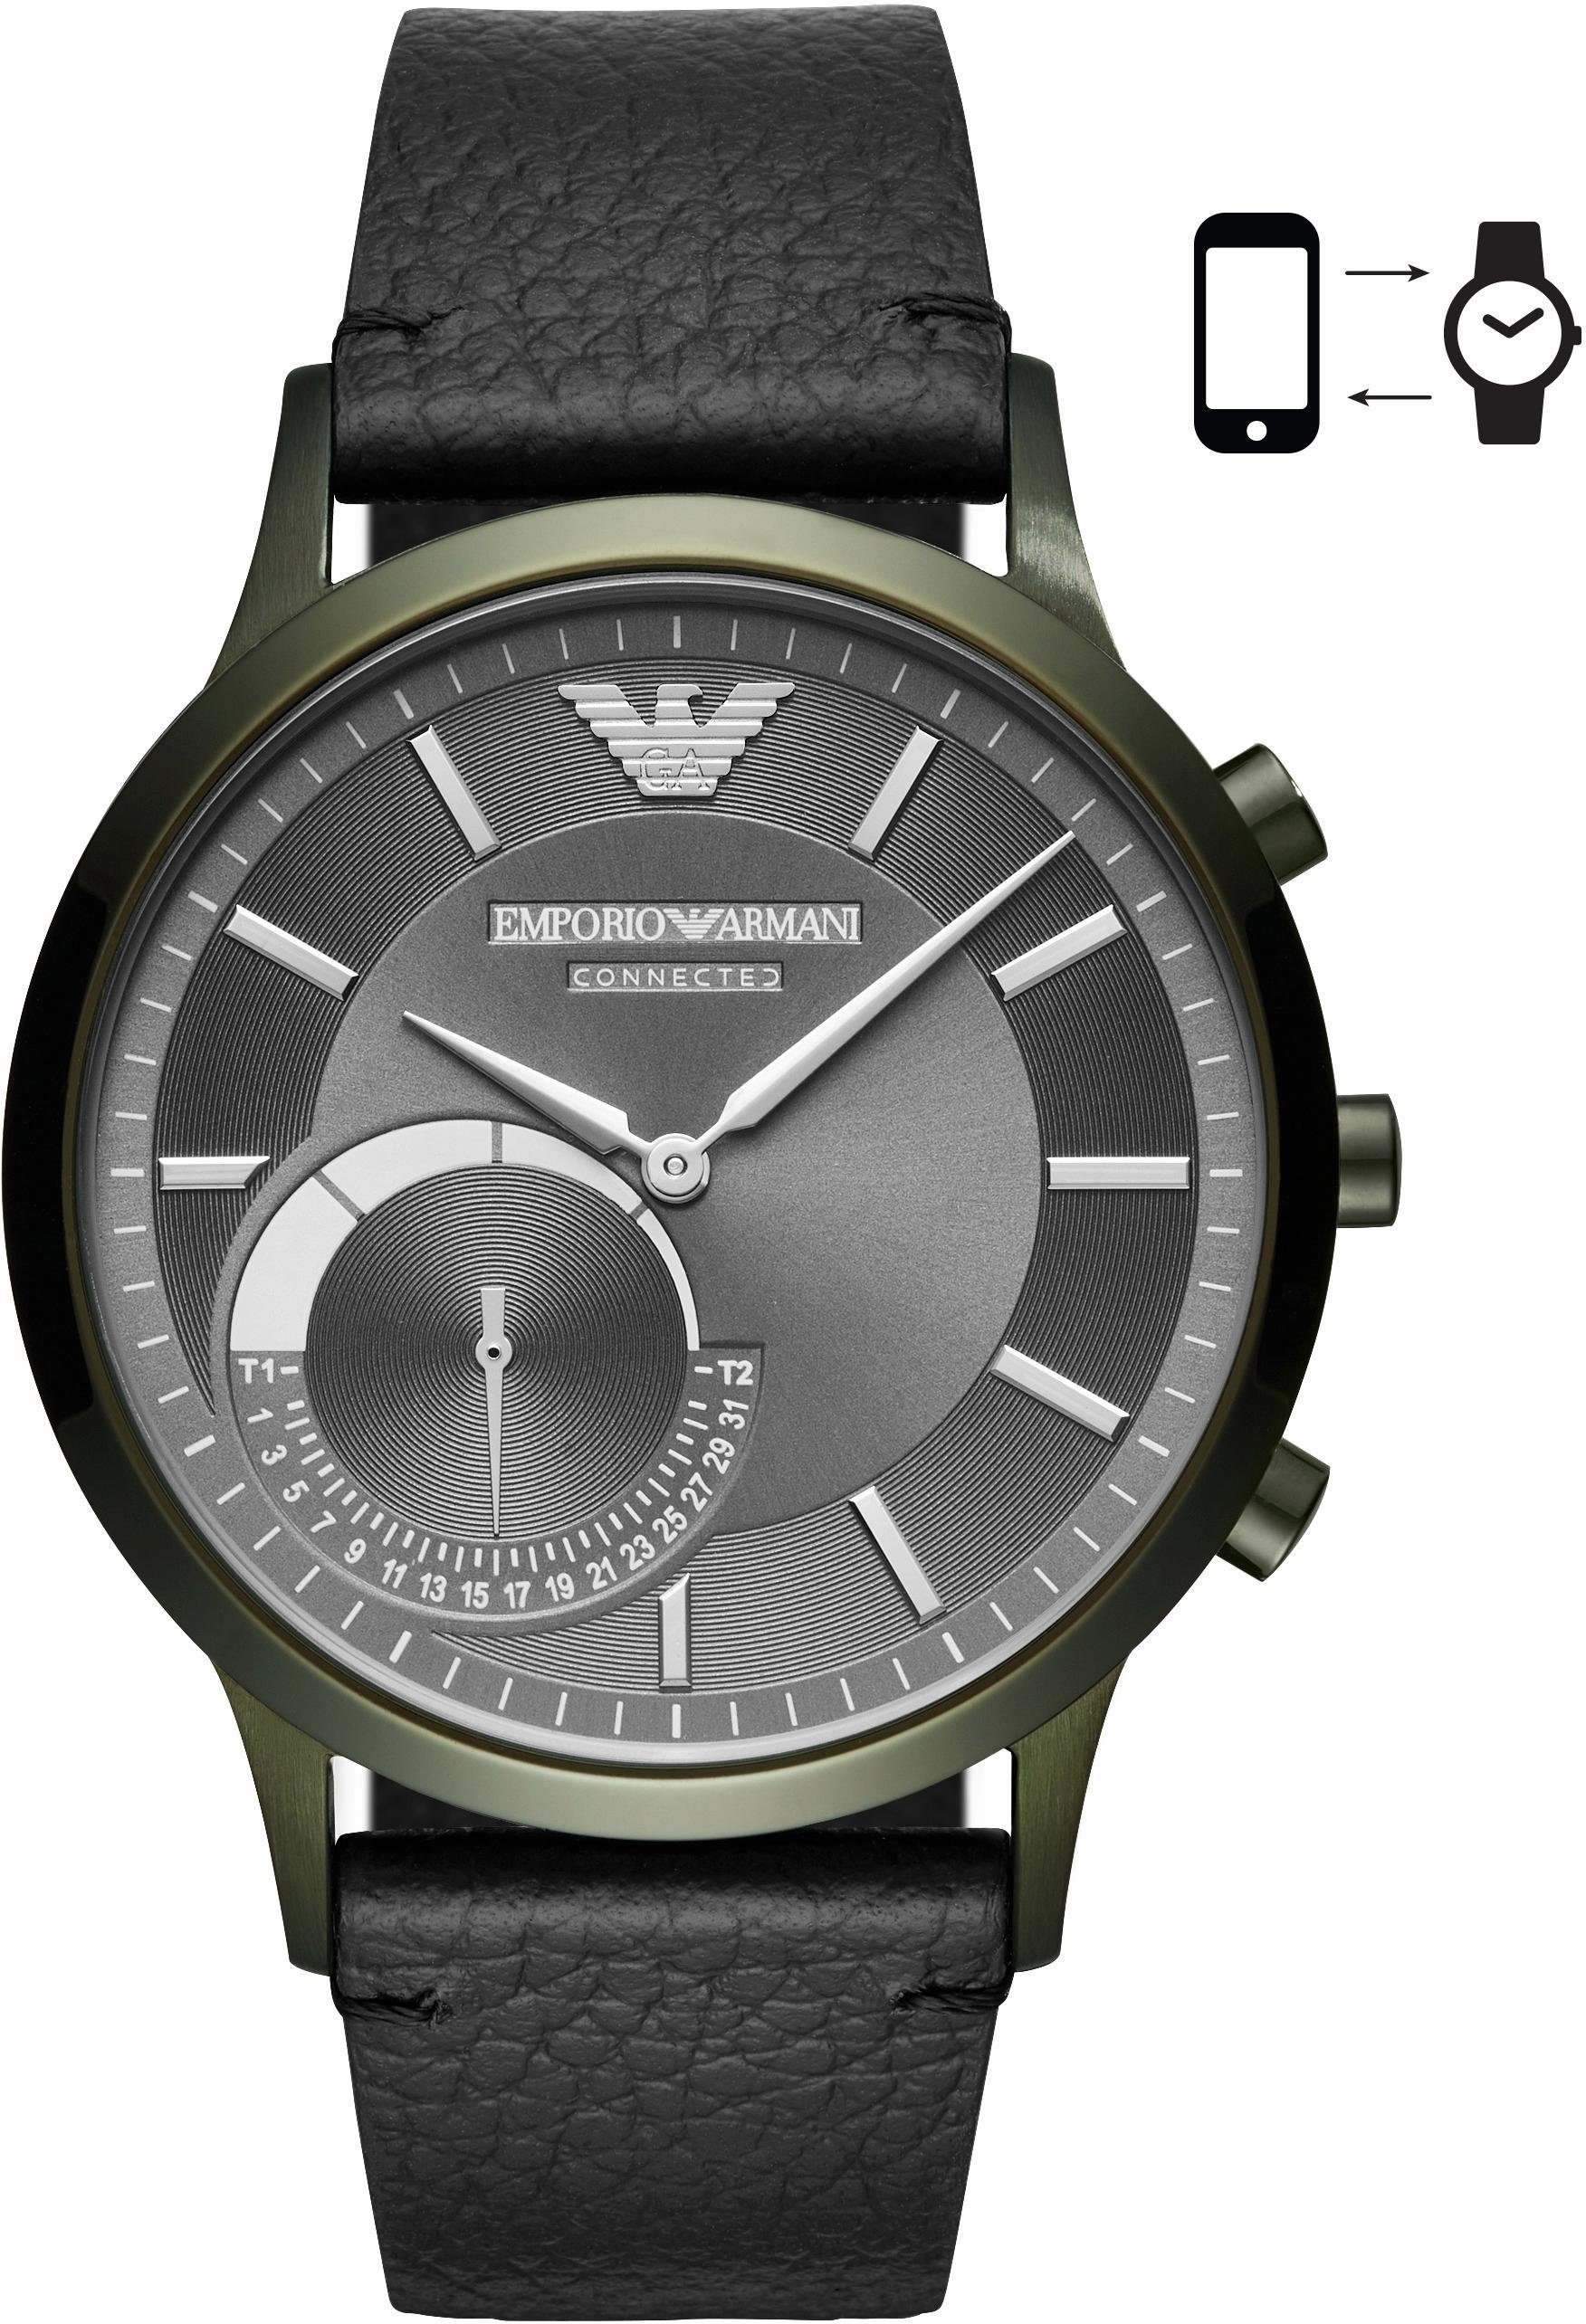 EMPORIO ARMANI CONNECTED ART3021 Smartwatch (Android Wear)